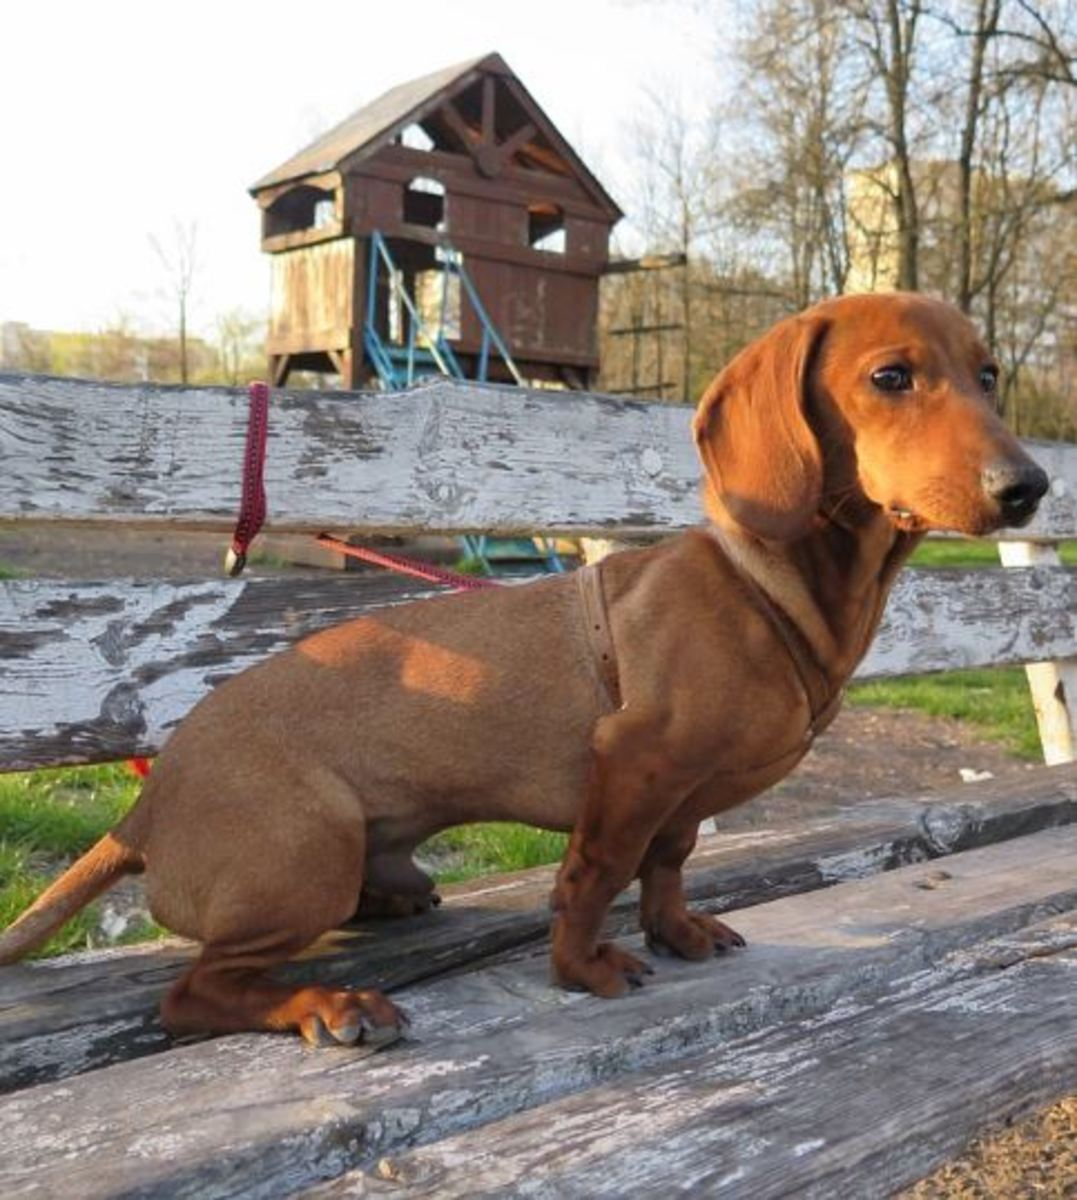 Dachshunds with their long backs are the poster child for IVDD.